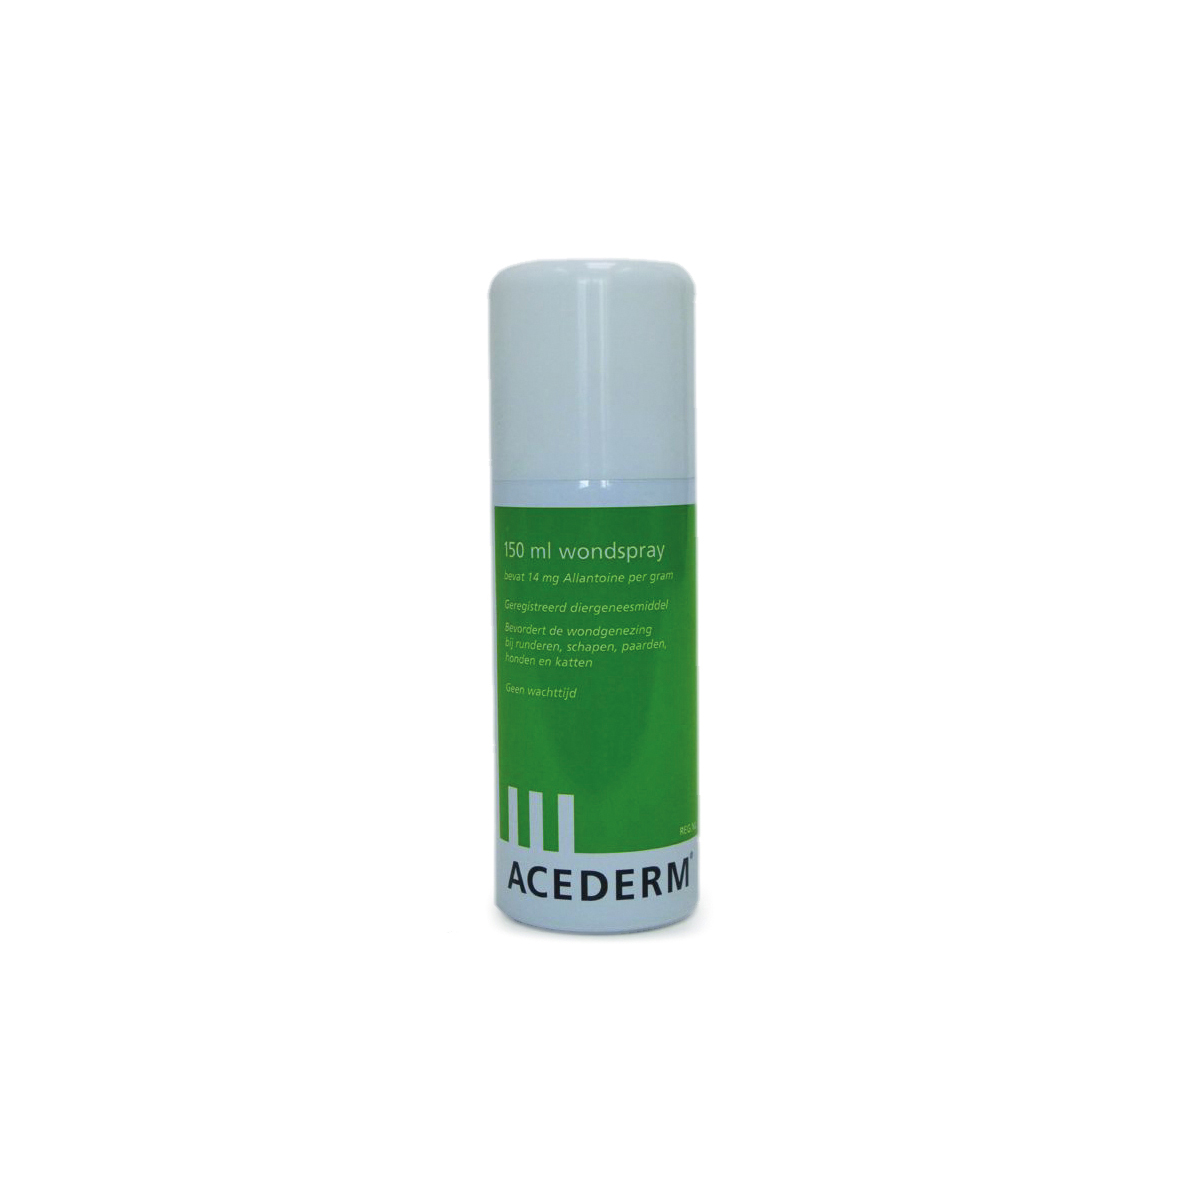 Wondspray wit/groen 150 ml